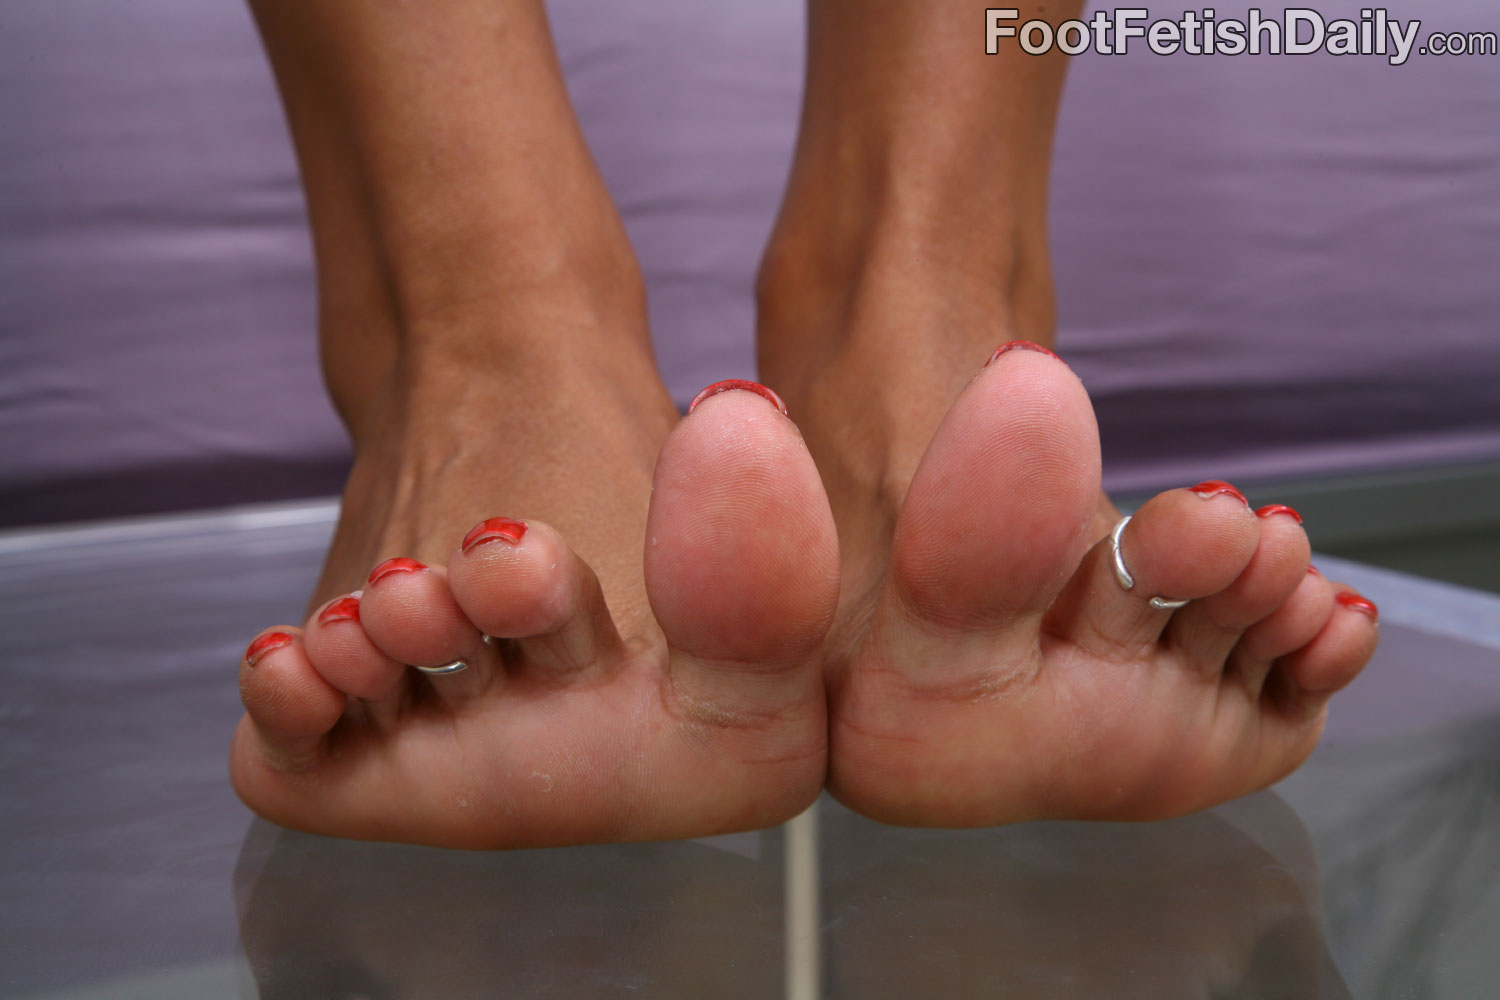 Luv feet sex bare marie